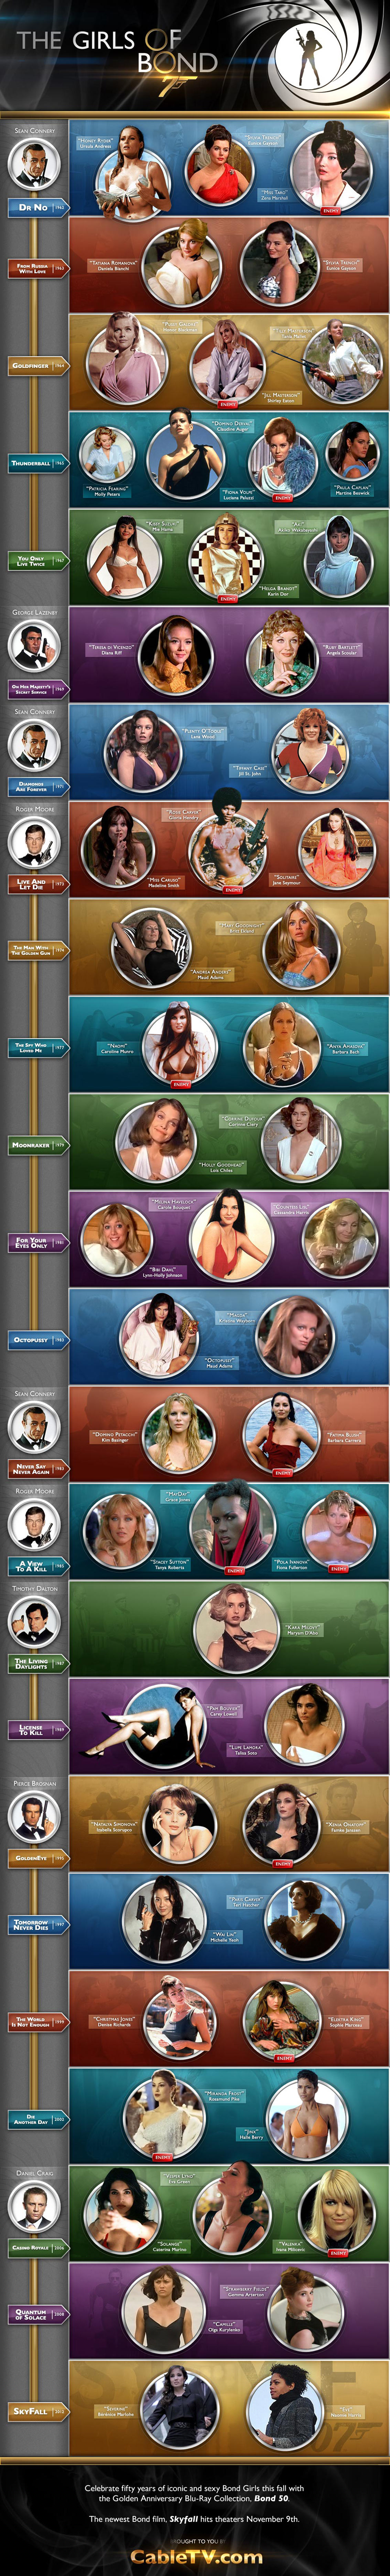 The Girls of James Bond Movie Infographic